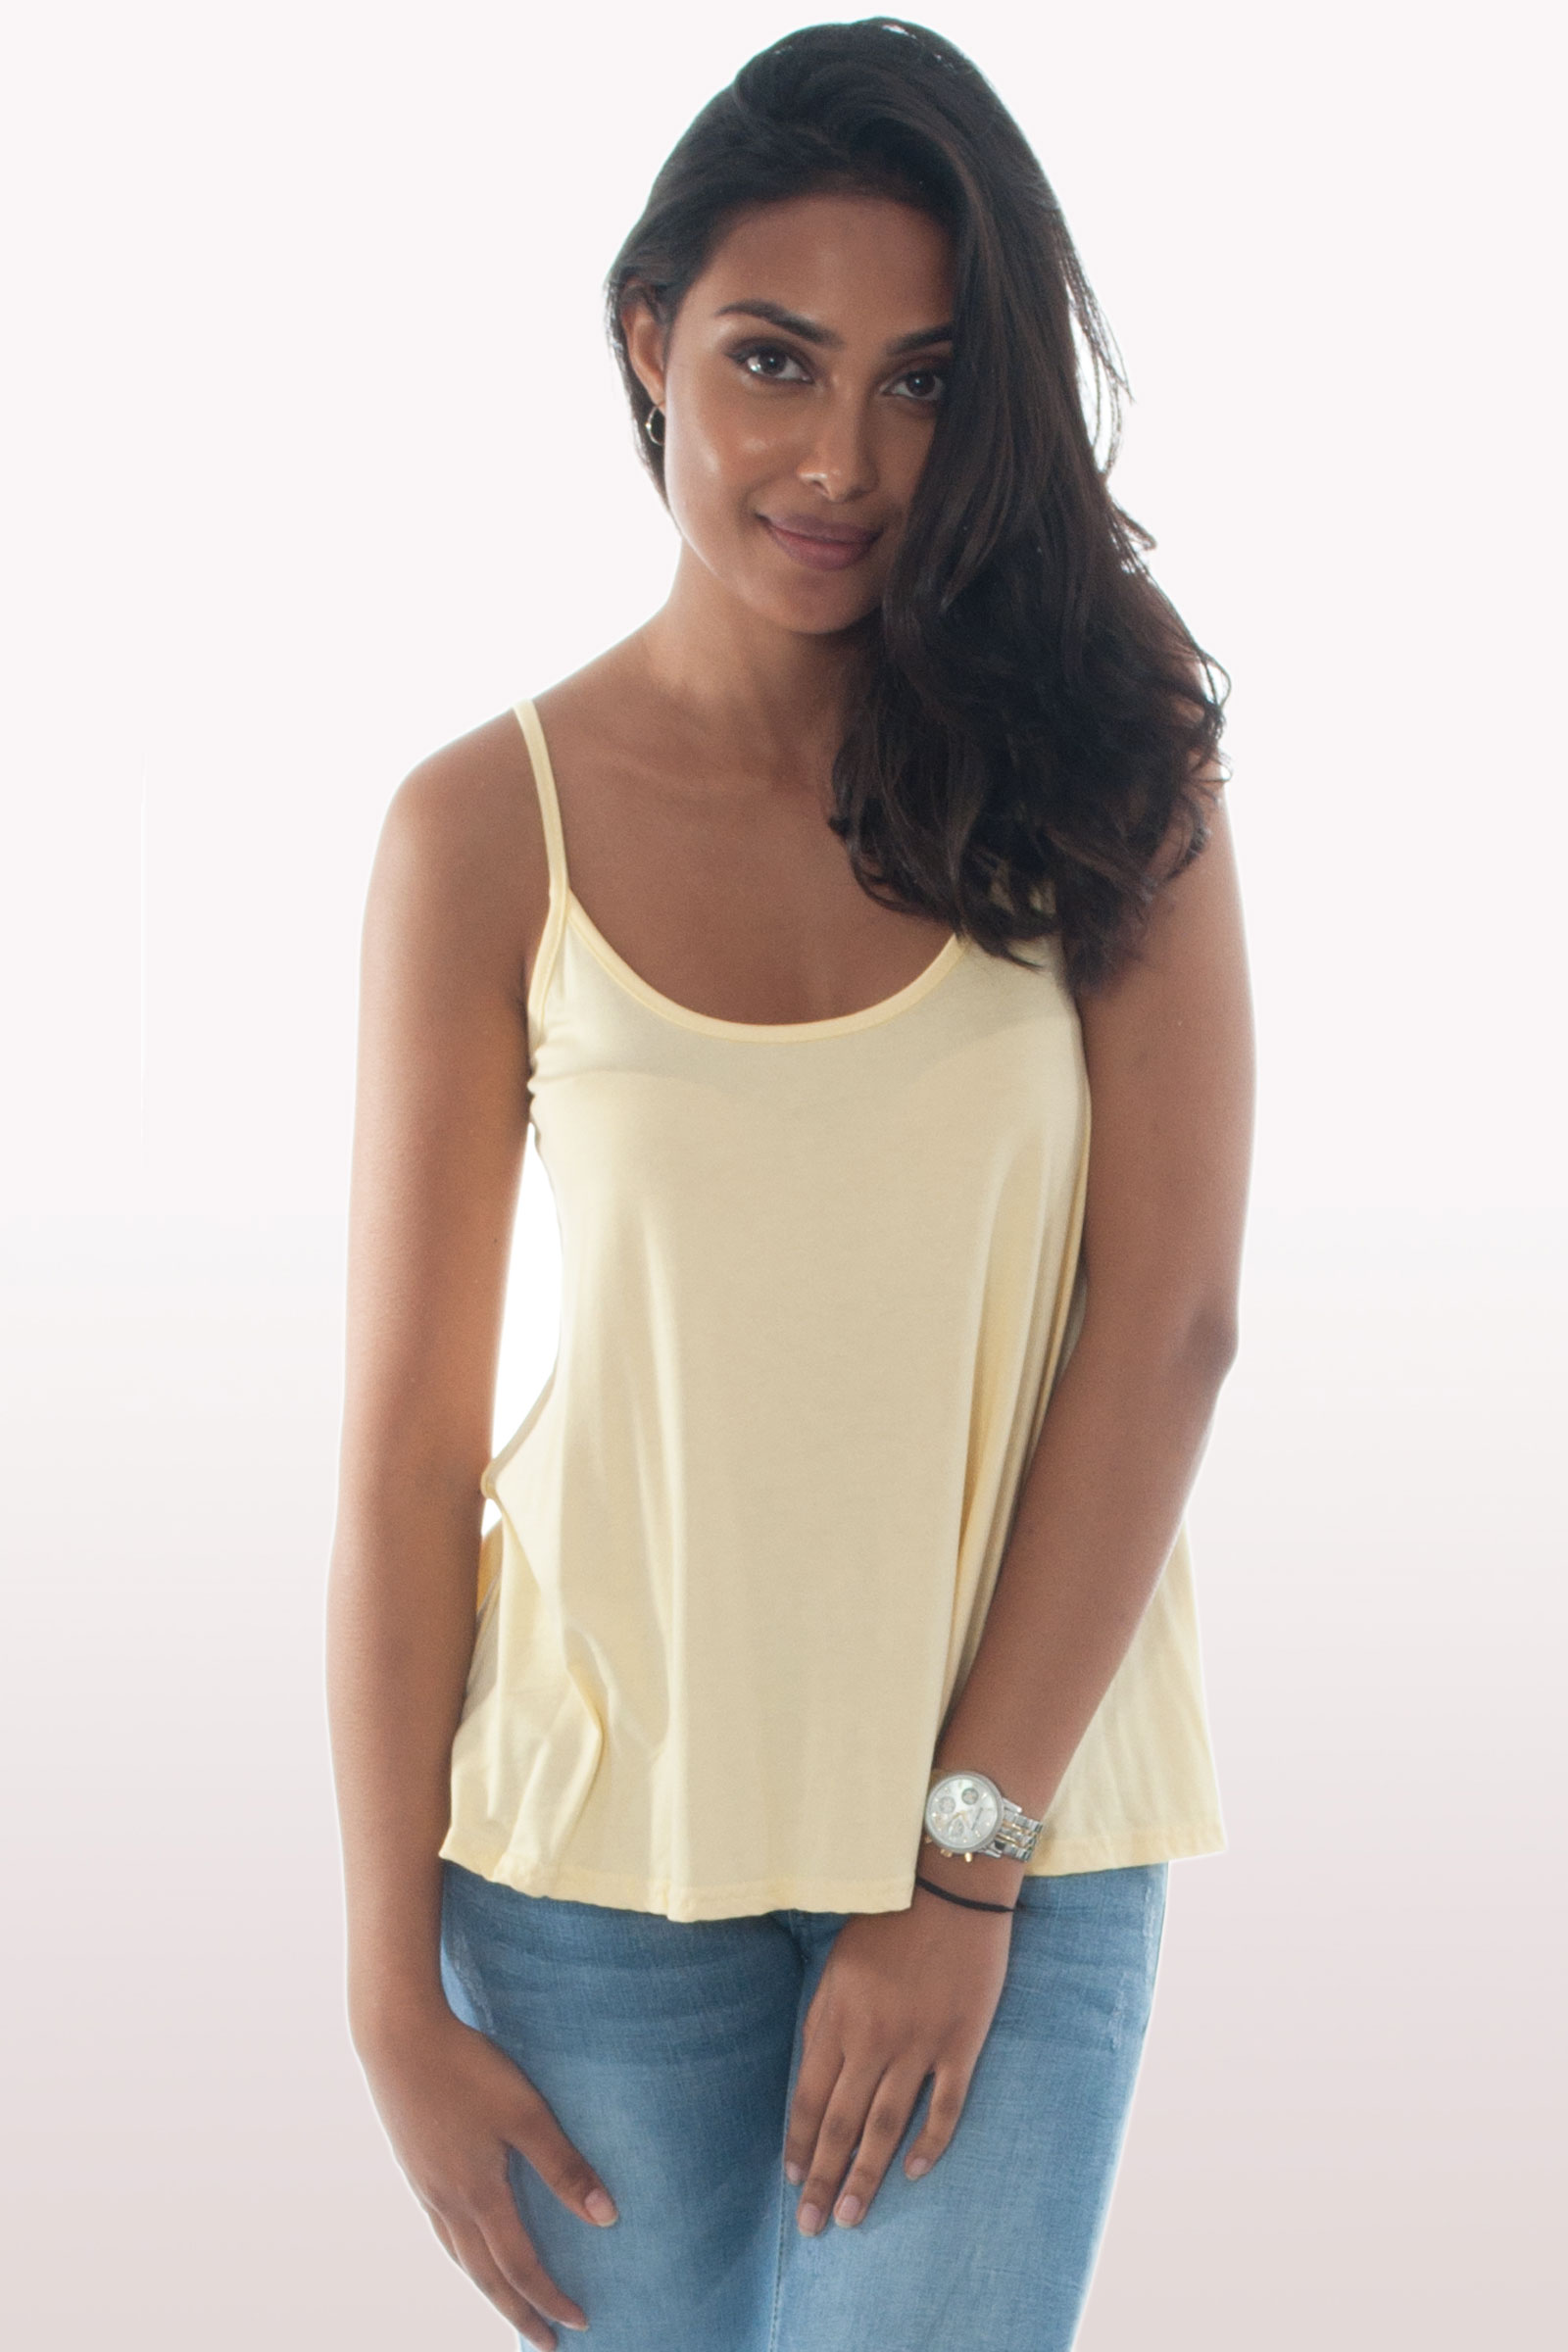 An essential basic for pairing with sheer tops, short shirts, open sweaters, plunging necklines, and warm temps, camisoles offer up comfort, coverage, and function. This Top 10 list brings you options in a spectrum of prices, colors, and cuts.